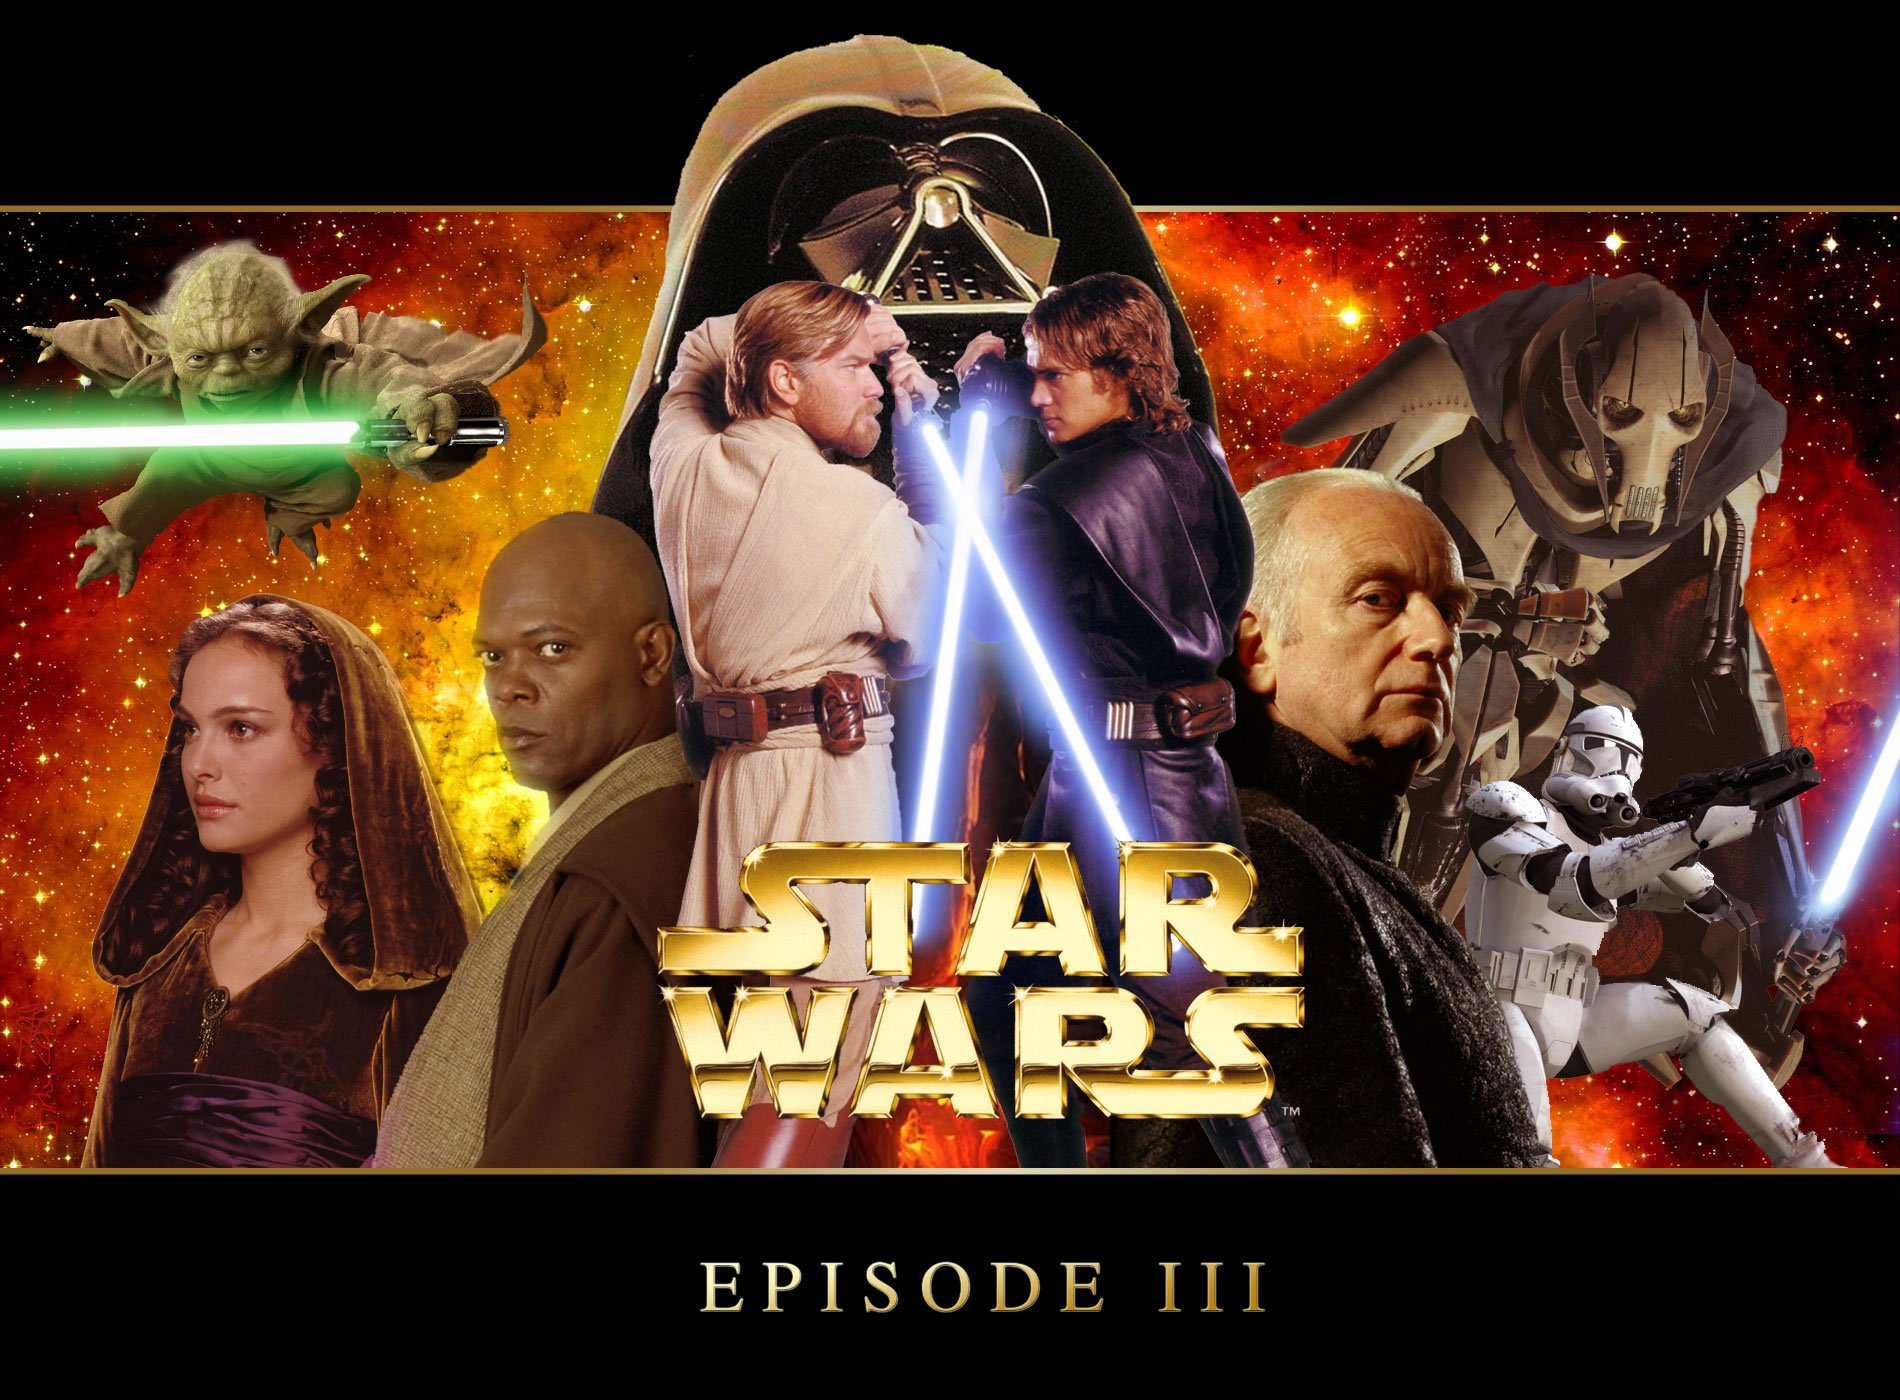 30 Star Wars Episode Iii Revenge Of The Sith Hd Wallpapers